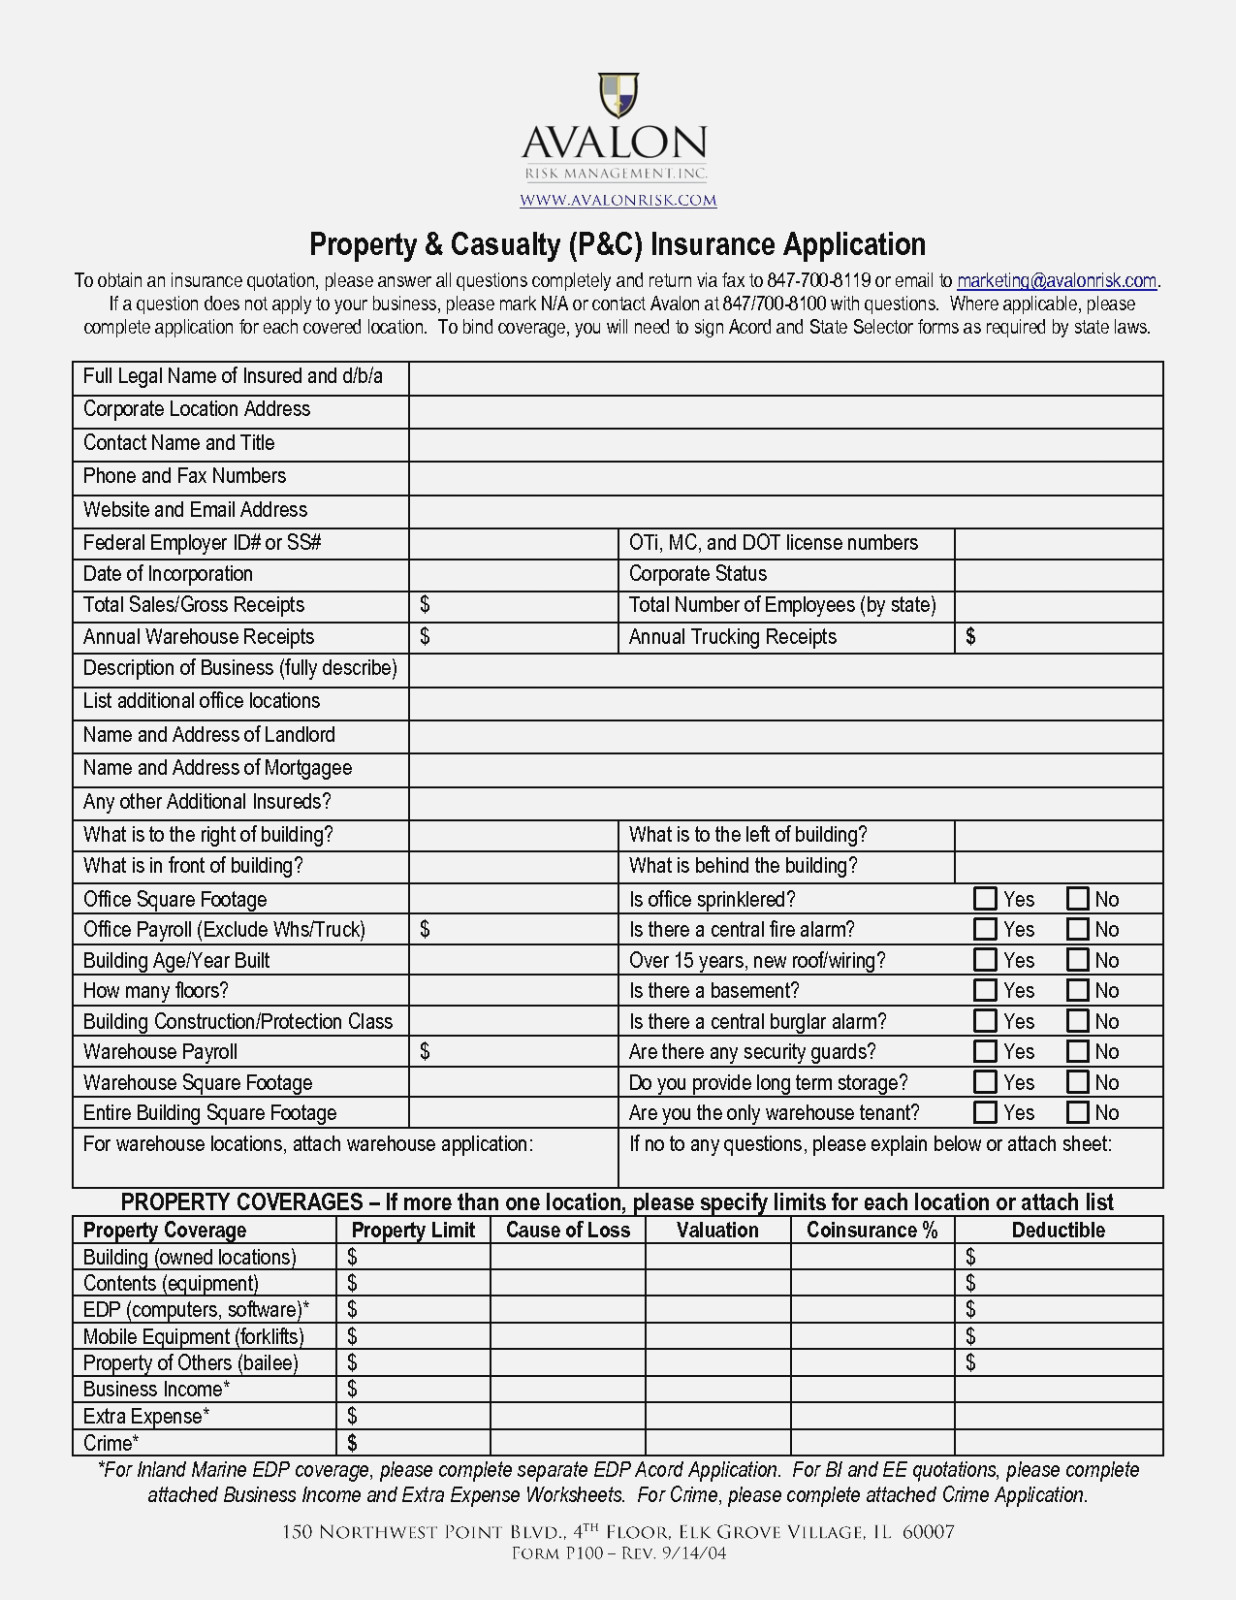 Home Insurance Application Form